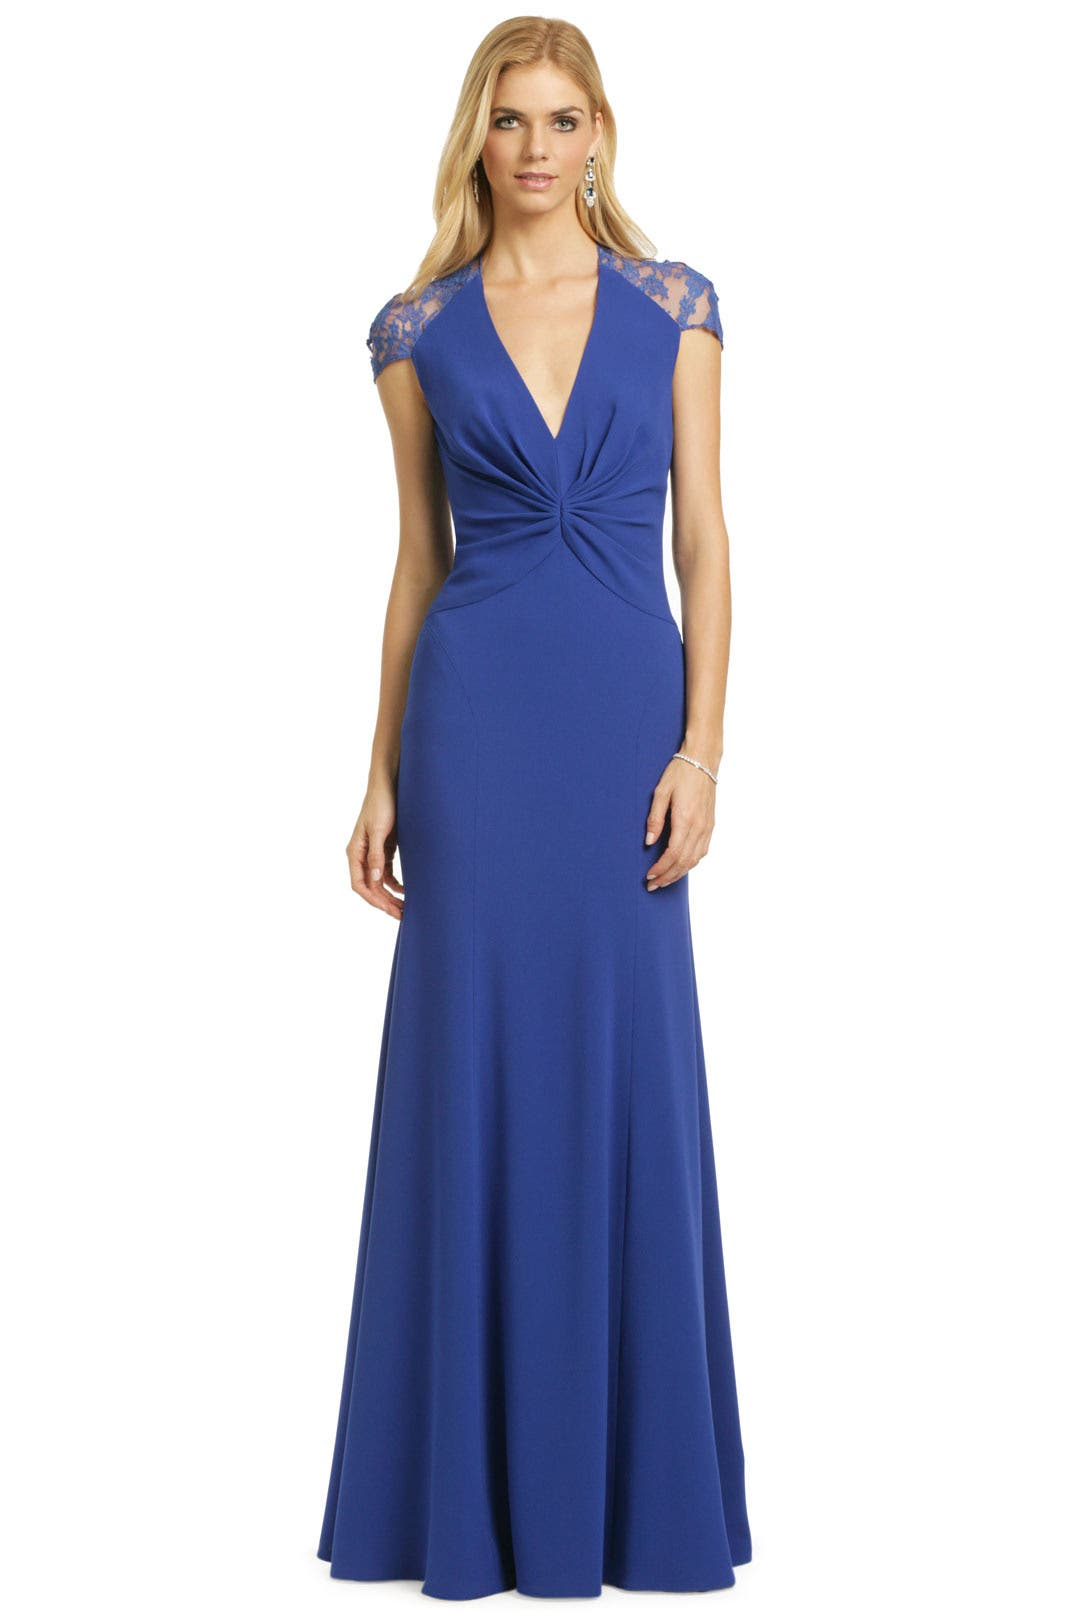 Sapphire Serenity Gown by Reem Acra for $1200 | Rent the Runway